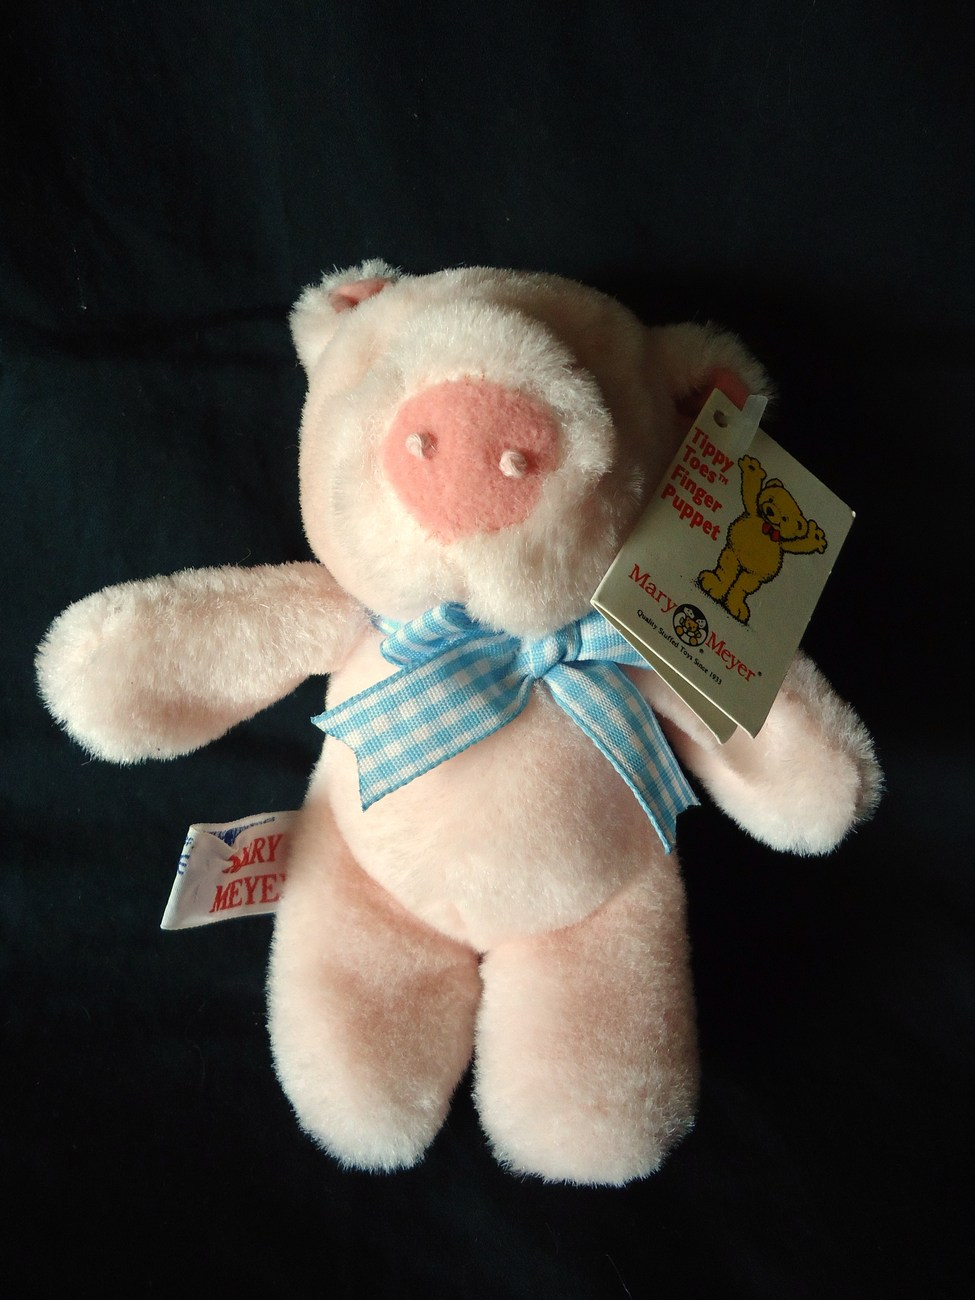 Mary Meyer Tippy Toes Finger Puppet Pig Plush Stuffed Animal Blue Gingham Bow